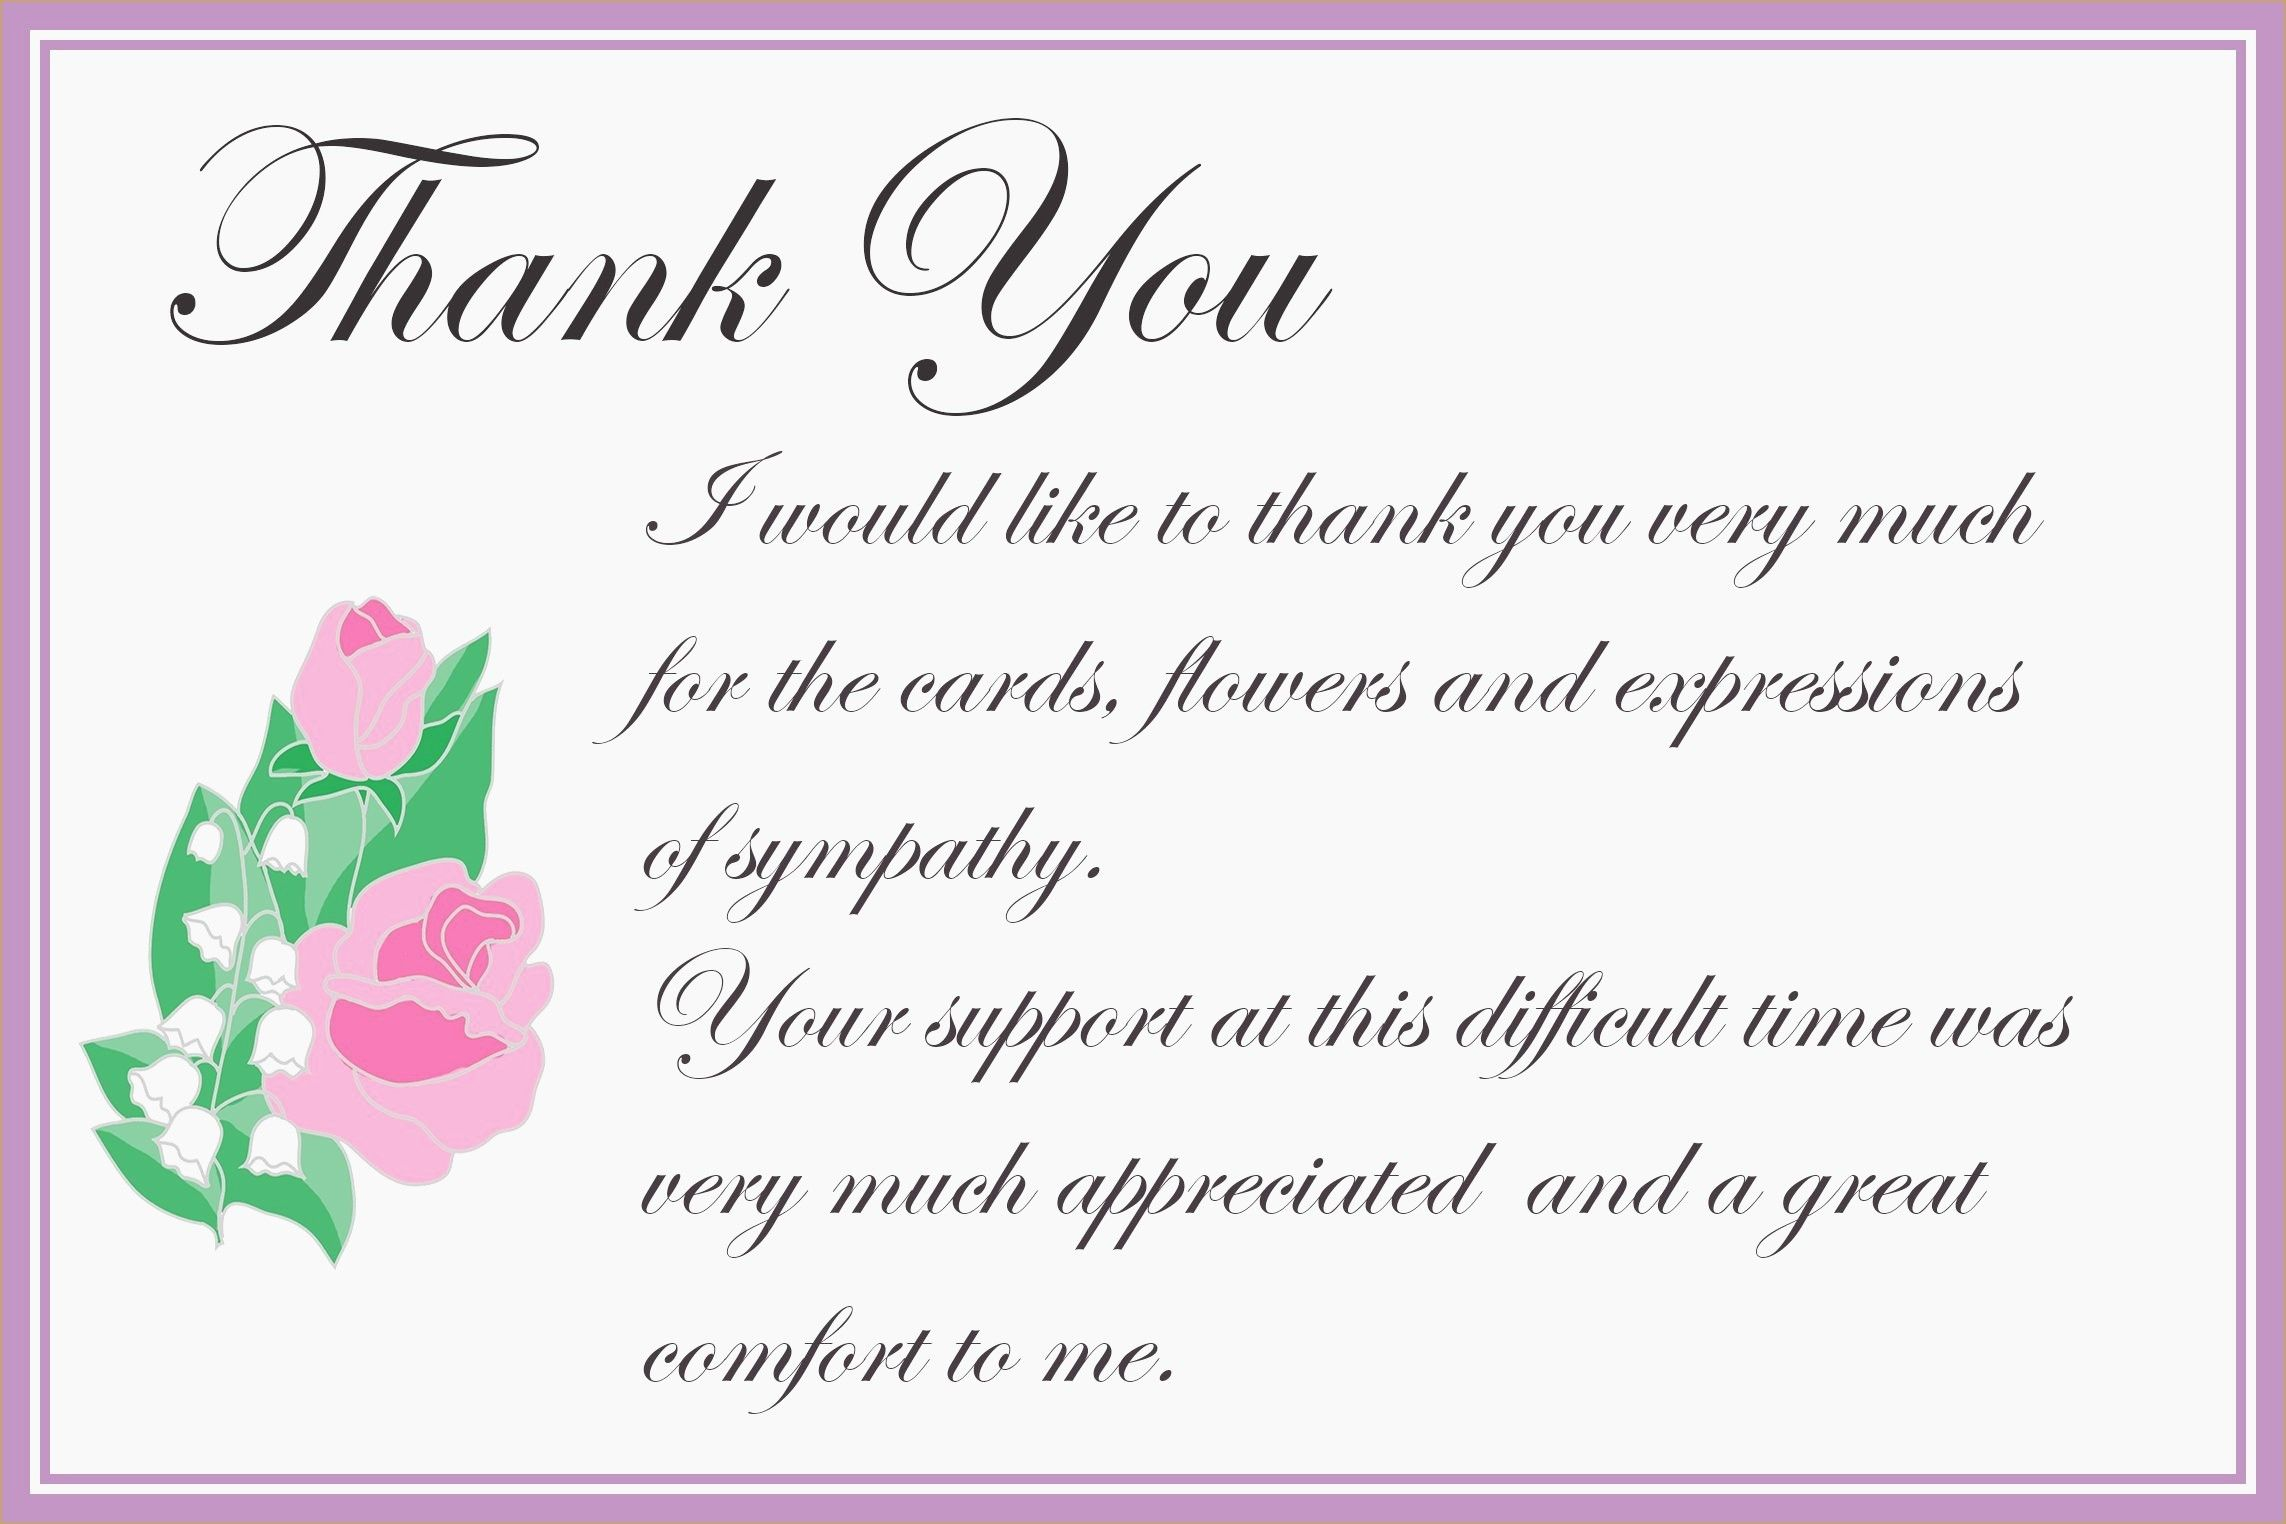 bereavement thank you cards staples brainmaxx Invitations4weddings